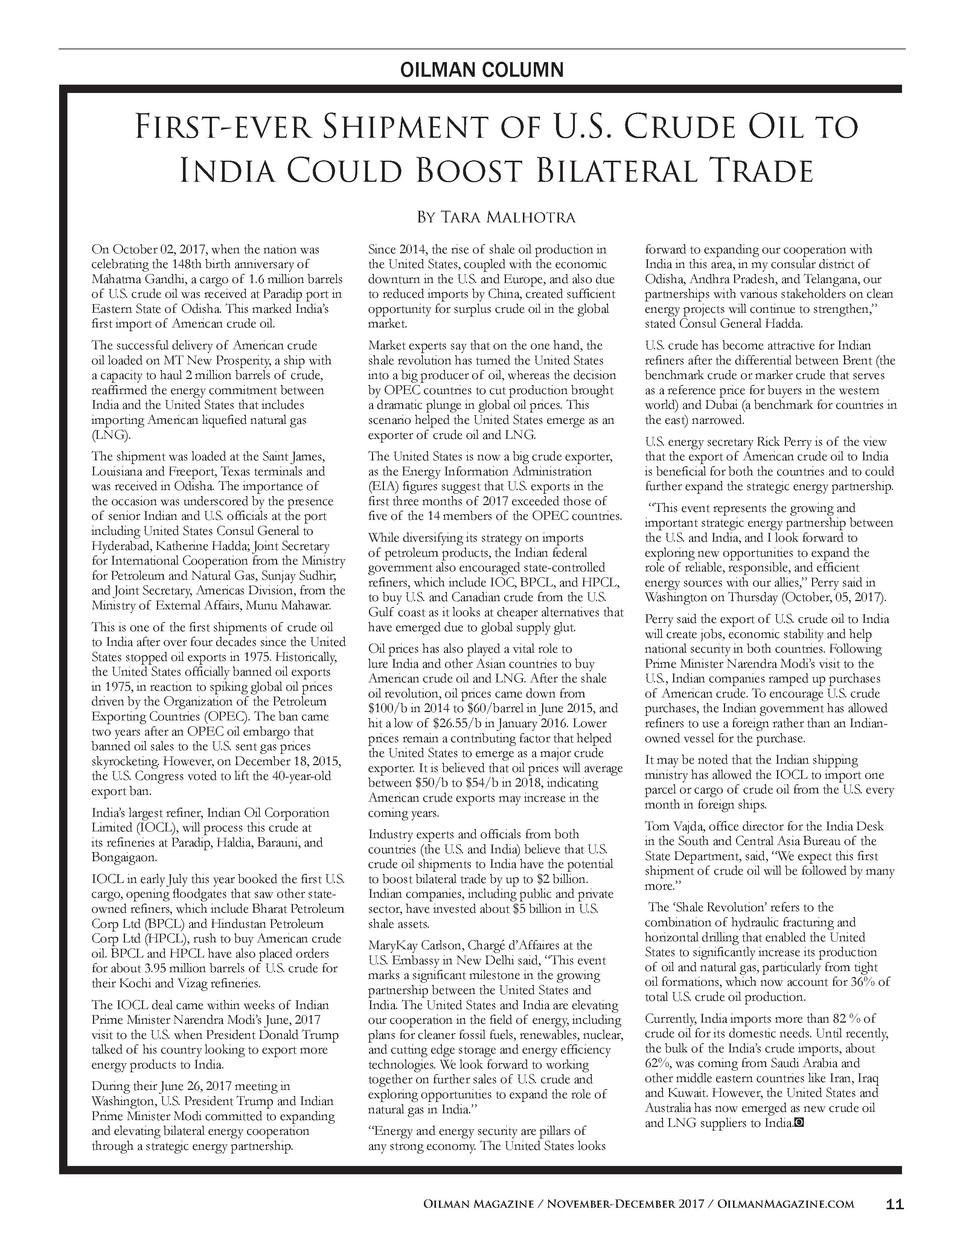 OILMAN COLUMN  First-ever Shipment of U.S. Crude Oil to India Could Boost Bilateral Trade By Tara Malhotra On October 02, ...